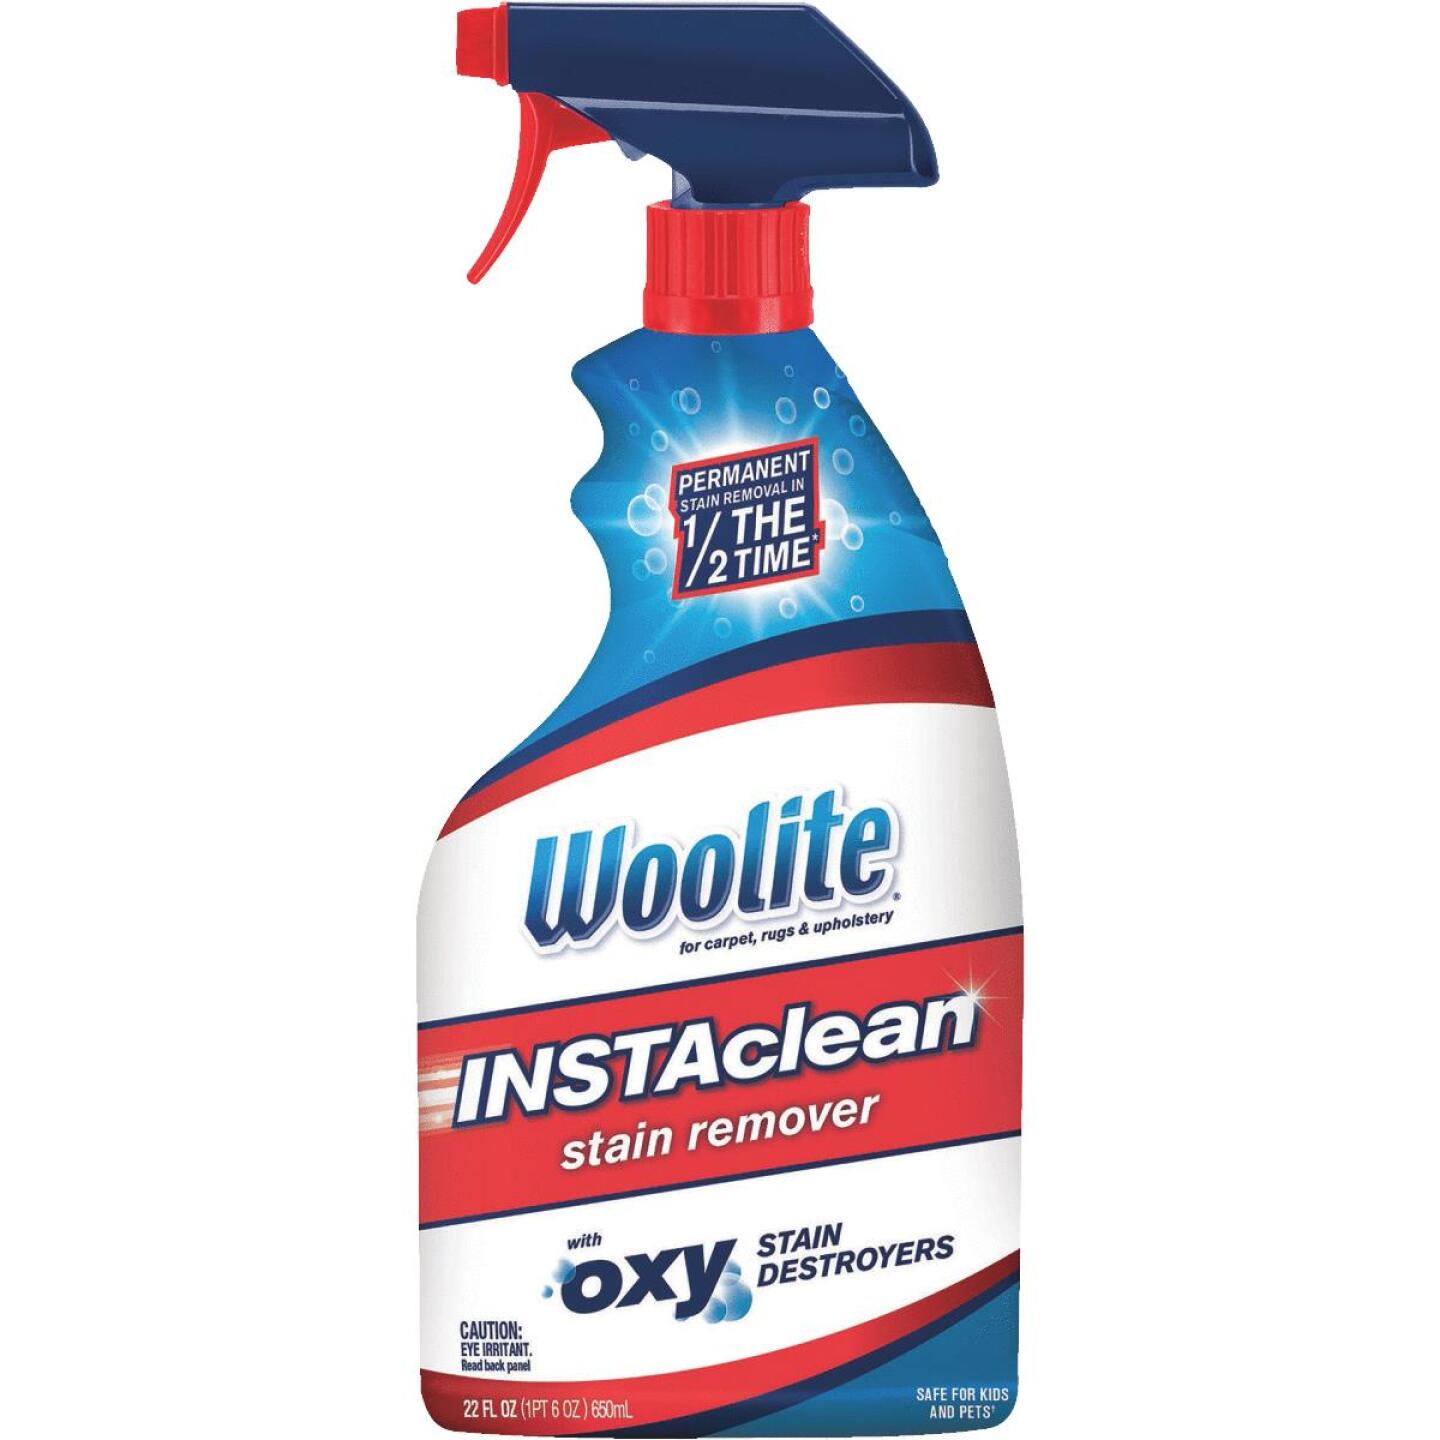 Woolite 22 Oz. InstaClean Carpet Cleaner Image 1